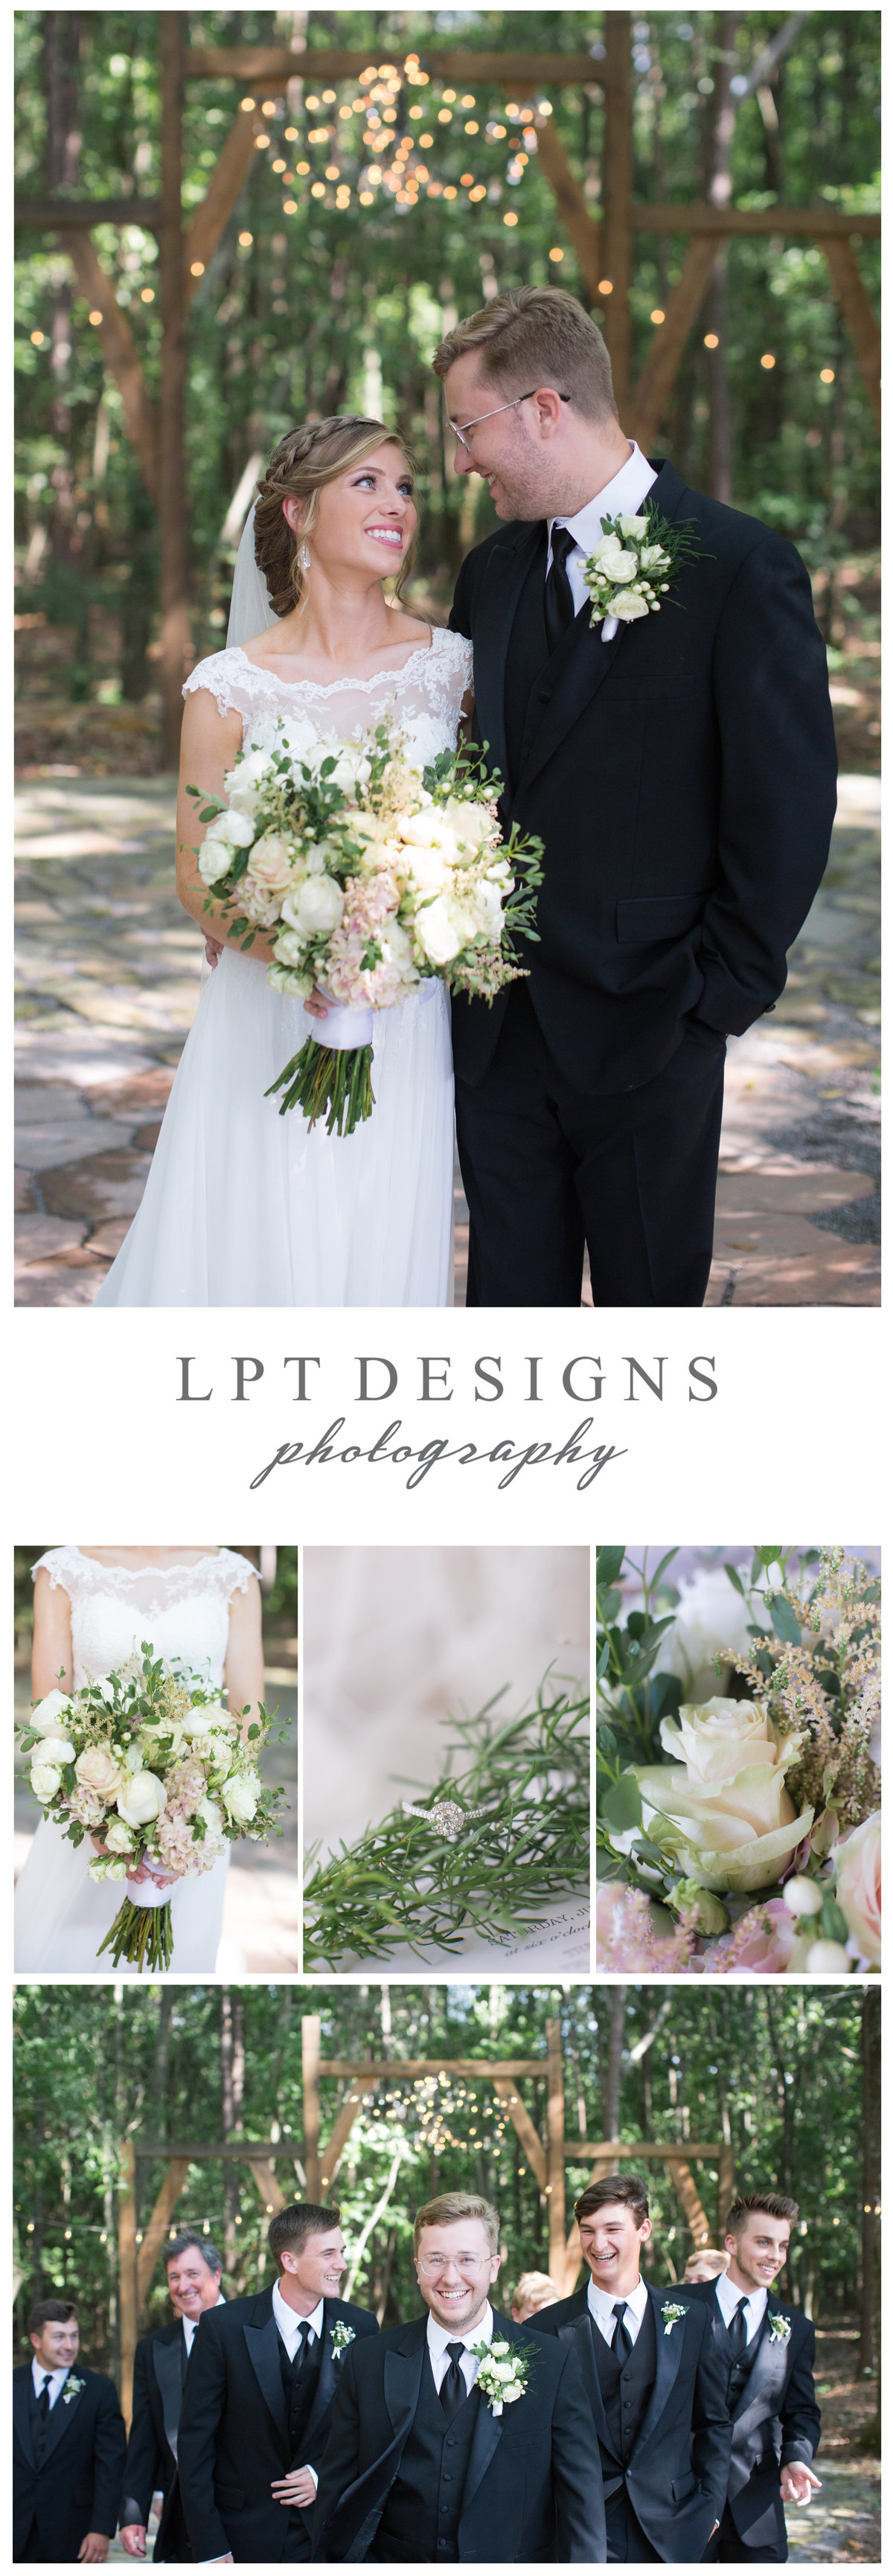 LPT Designs Photography Lydia Thrift Gadsden Alabama Fine Art Wedding Photographer KG 1